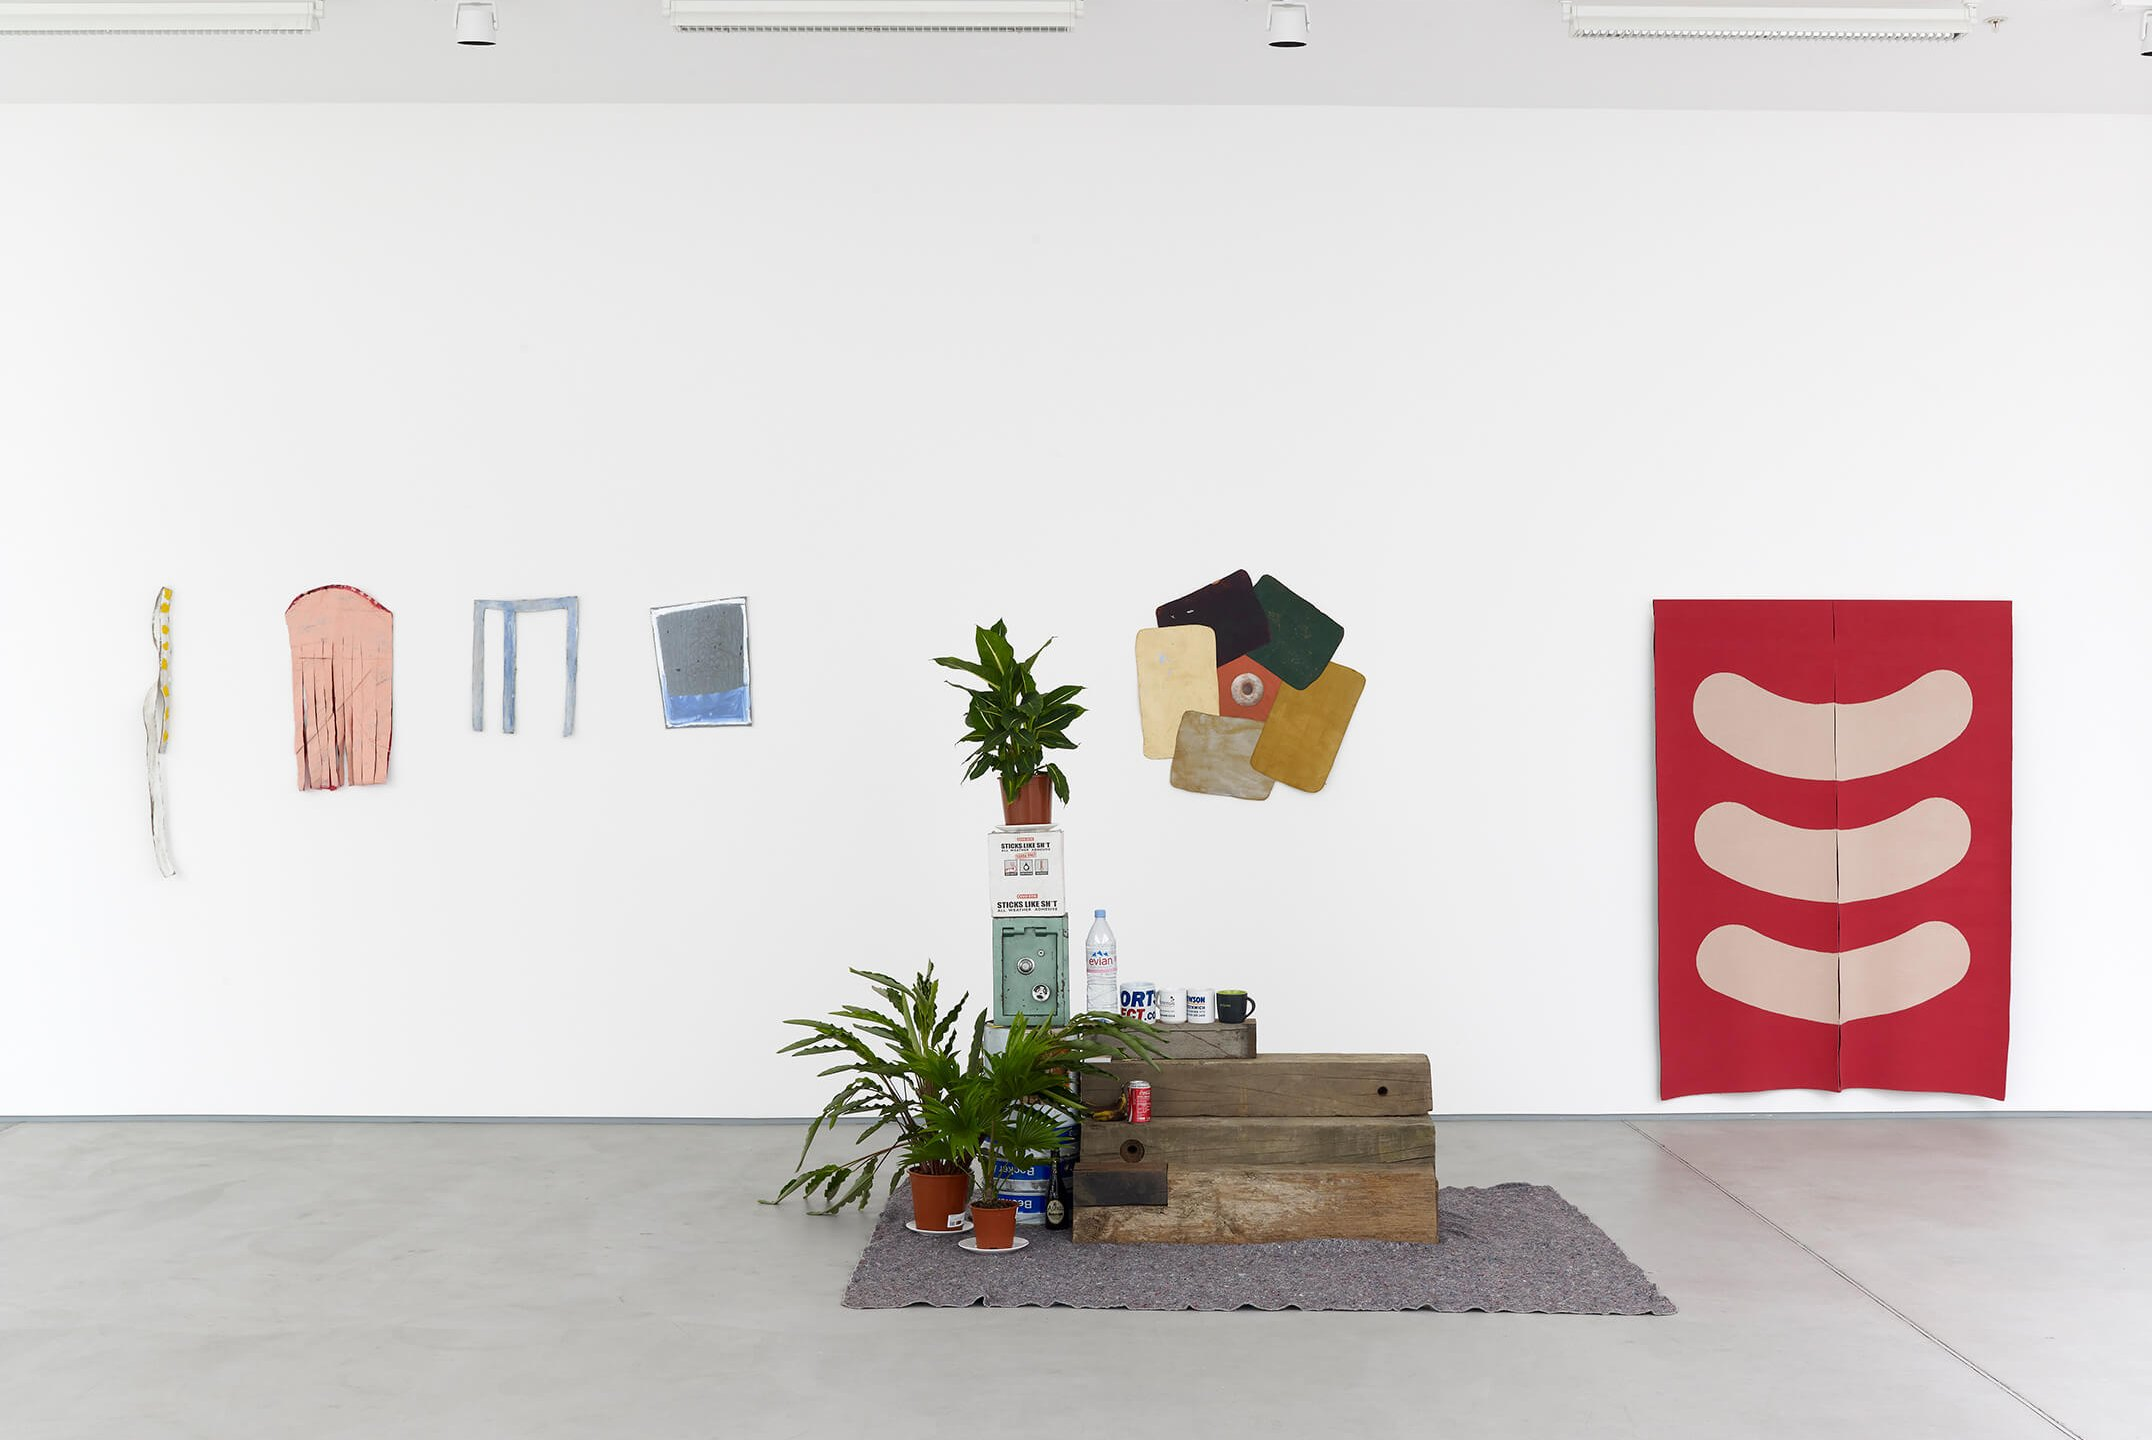 Adriano Costa, <em>Touch me I am geometrically sensitive</em>, Sadie Coles HQ, London, 2014 - Mendes Wood DM